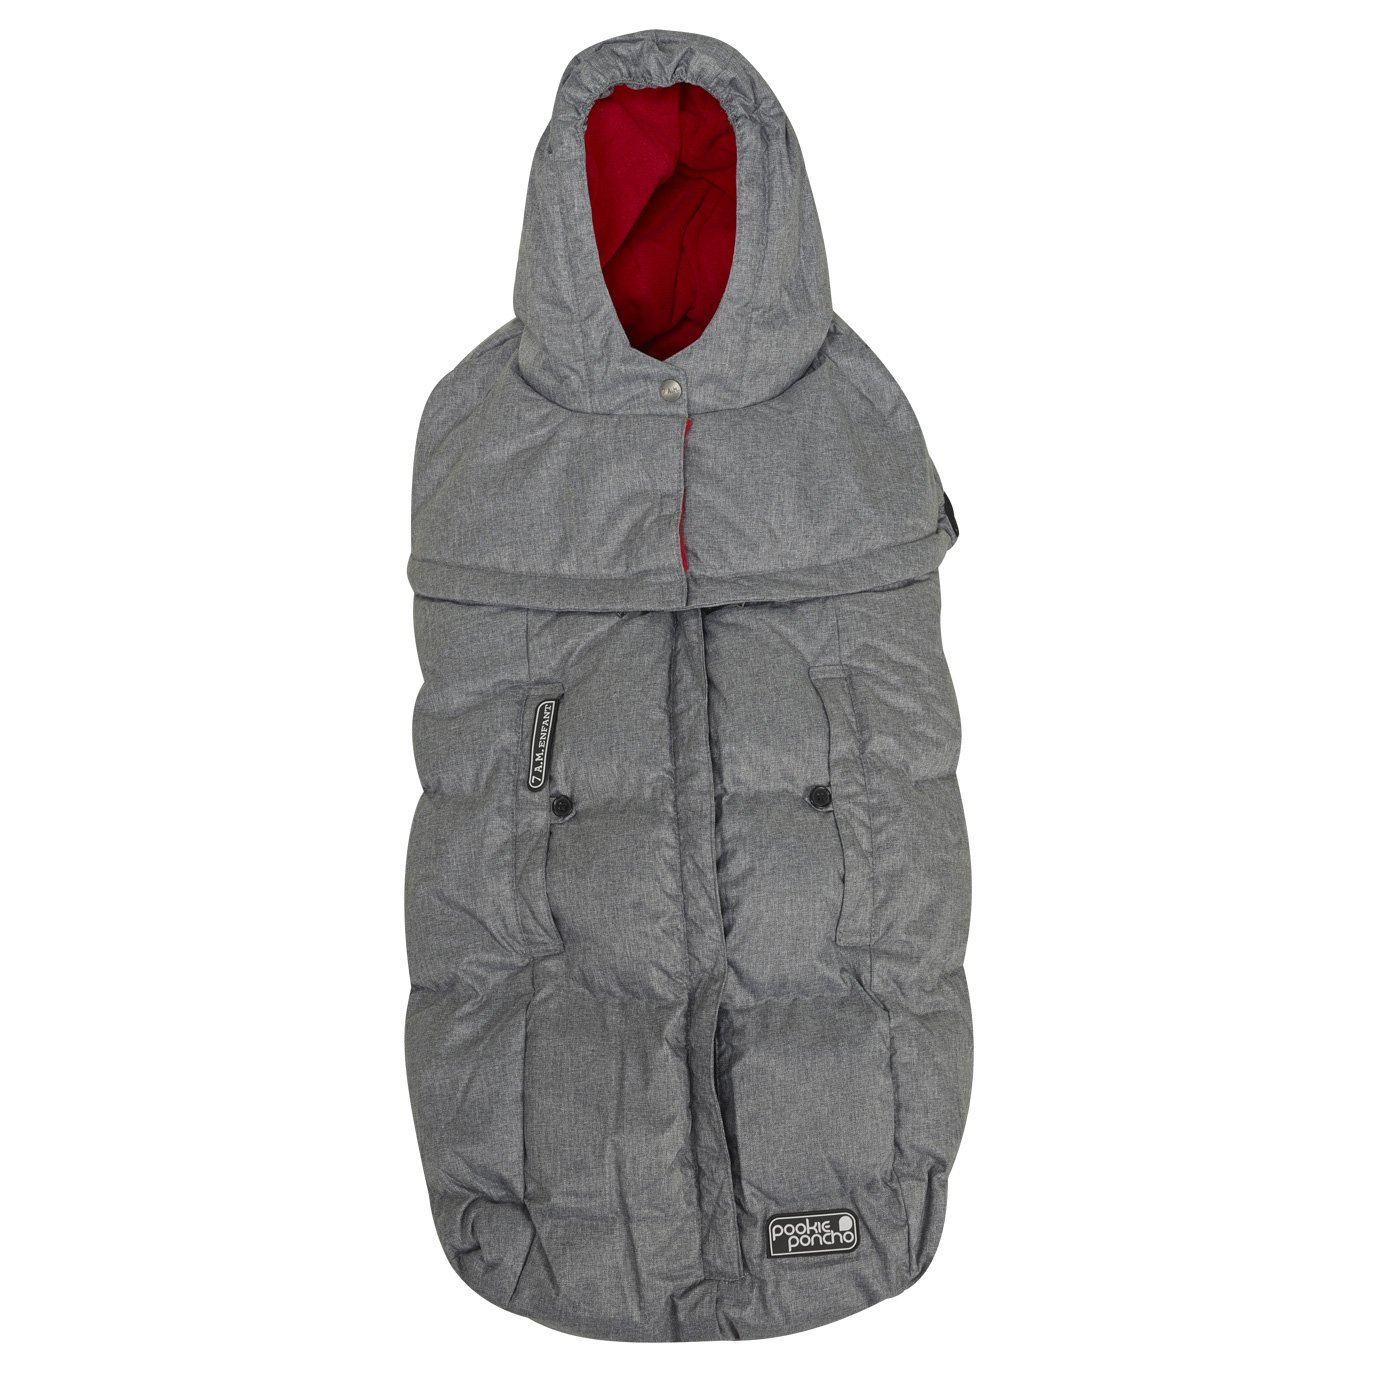 7 A.M. Enfant Pookie Poncho Footmuff-Heather Grey with Red Fleece Lining